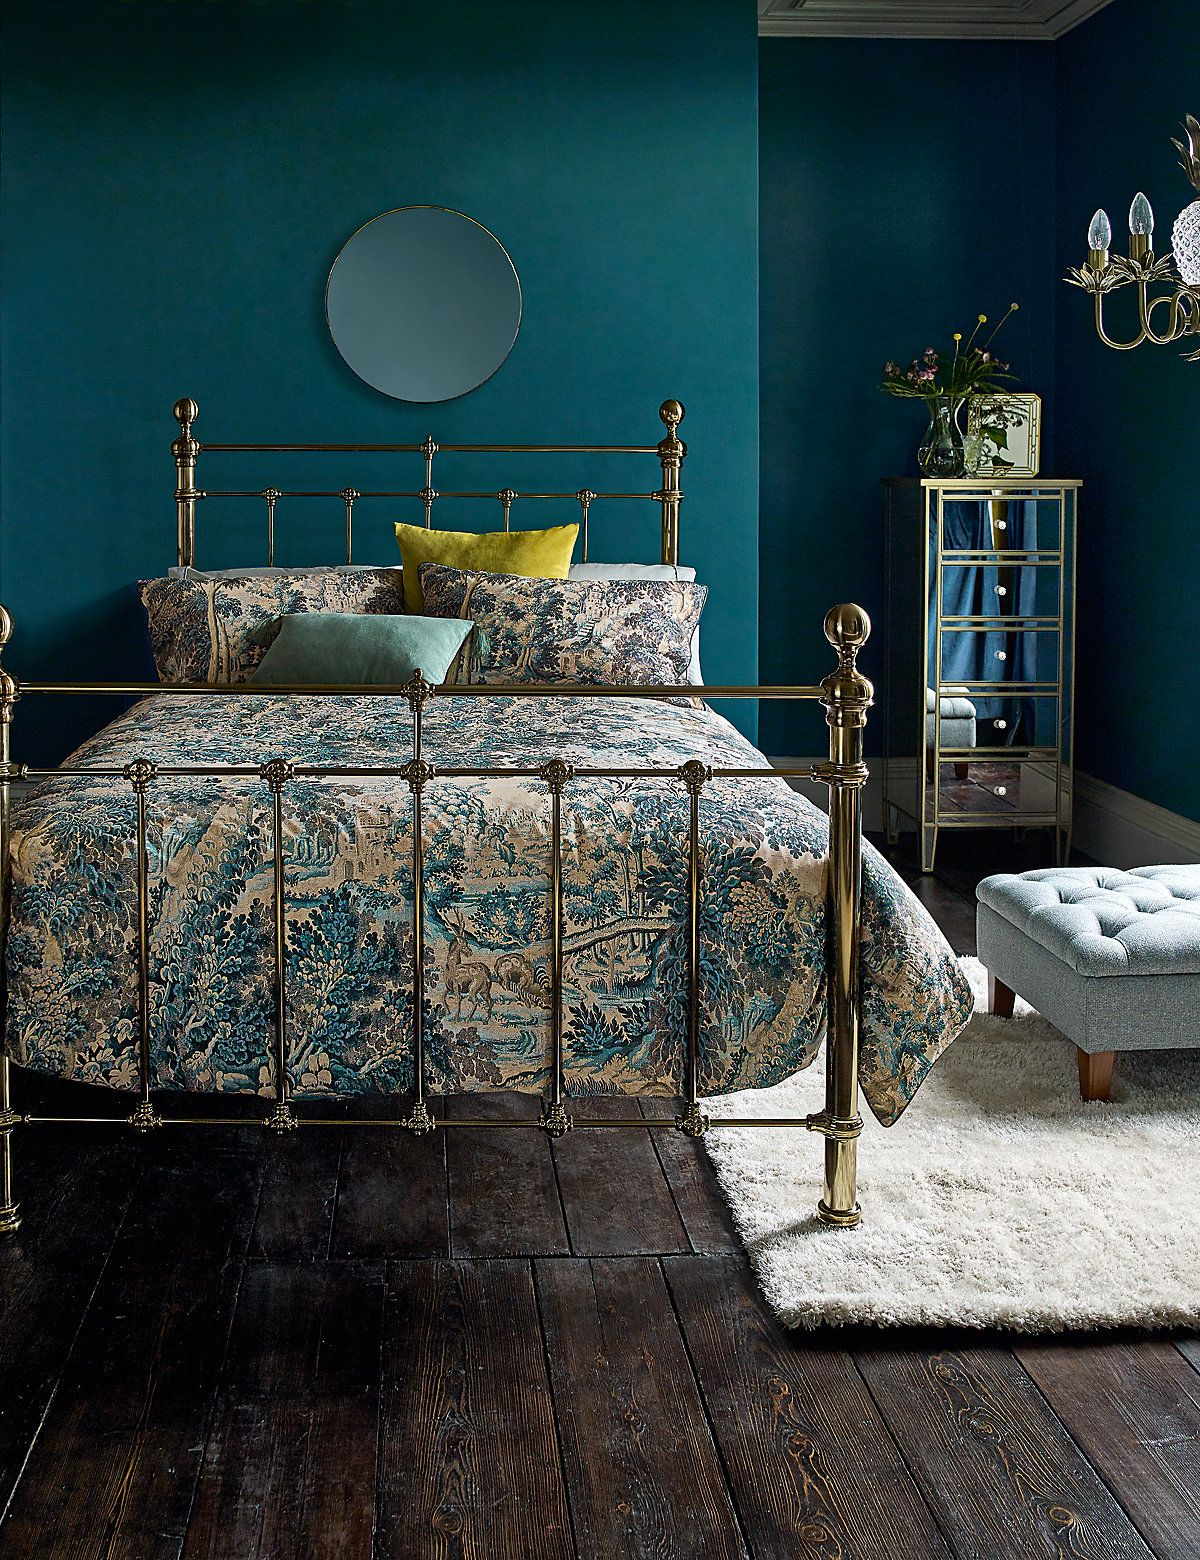 Letto A Castello Bluebell.Castello Brass Bedstead Bedroom Tapestry Bedding Bed Home Decor